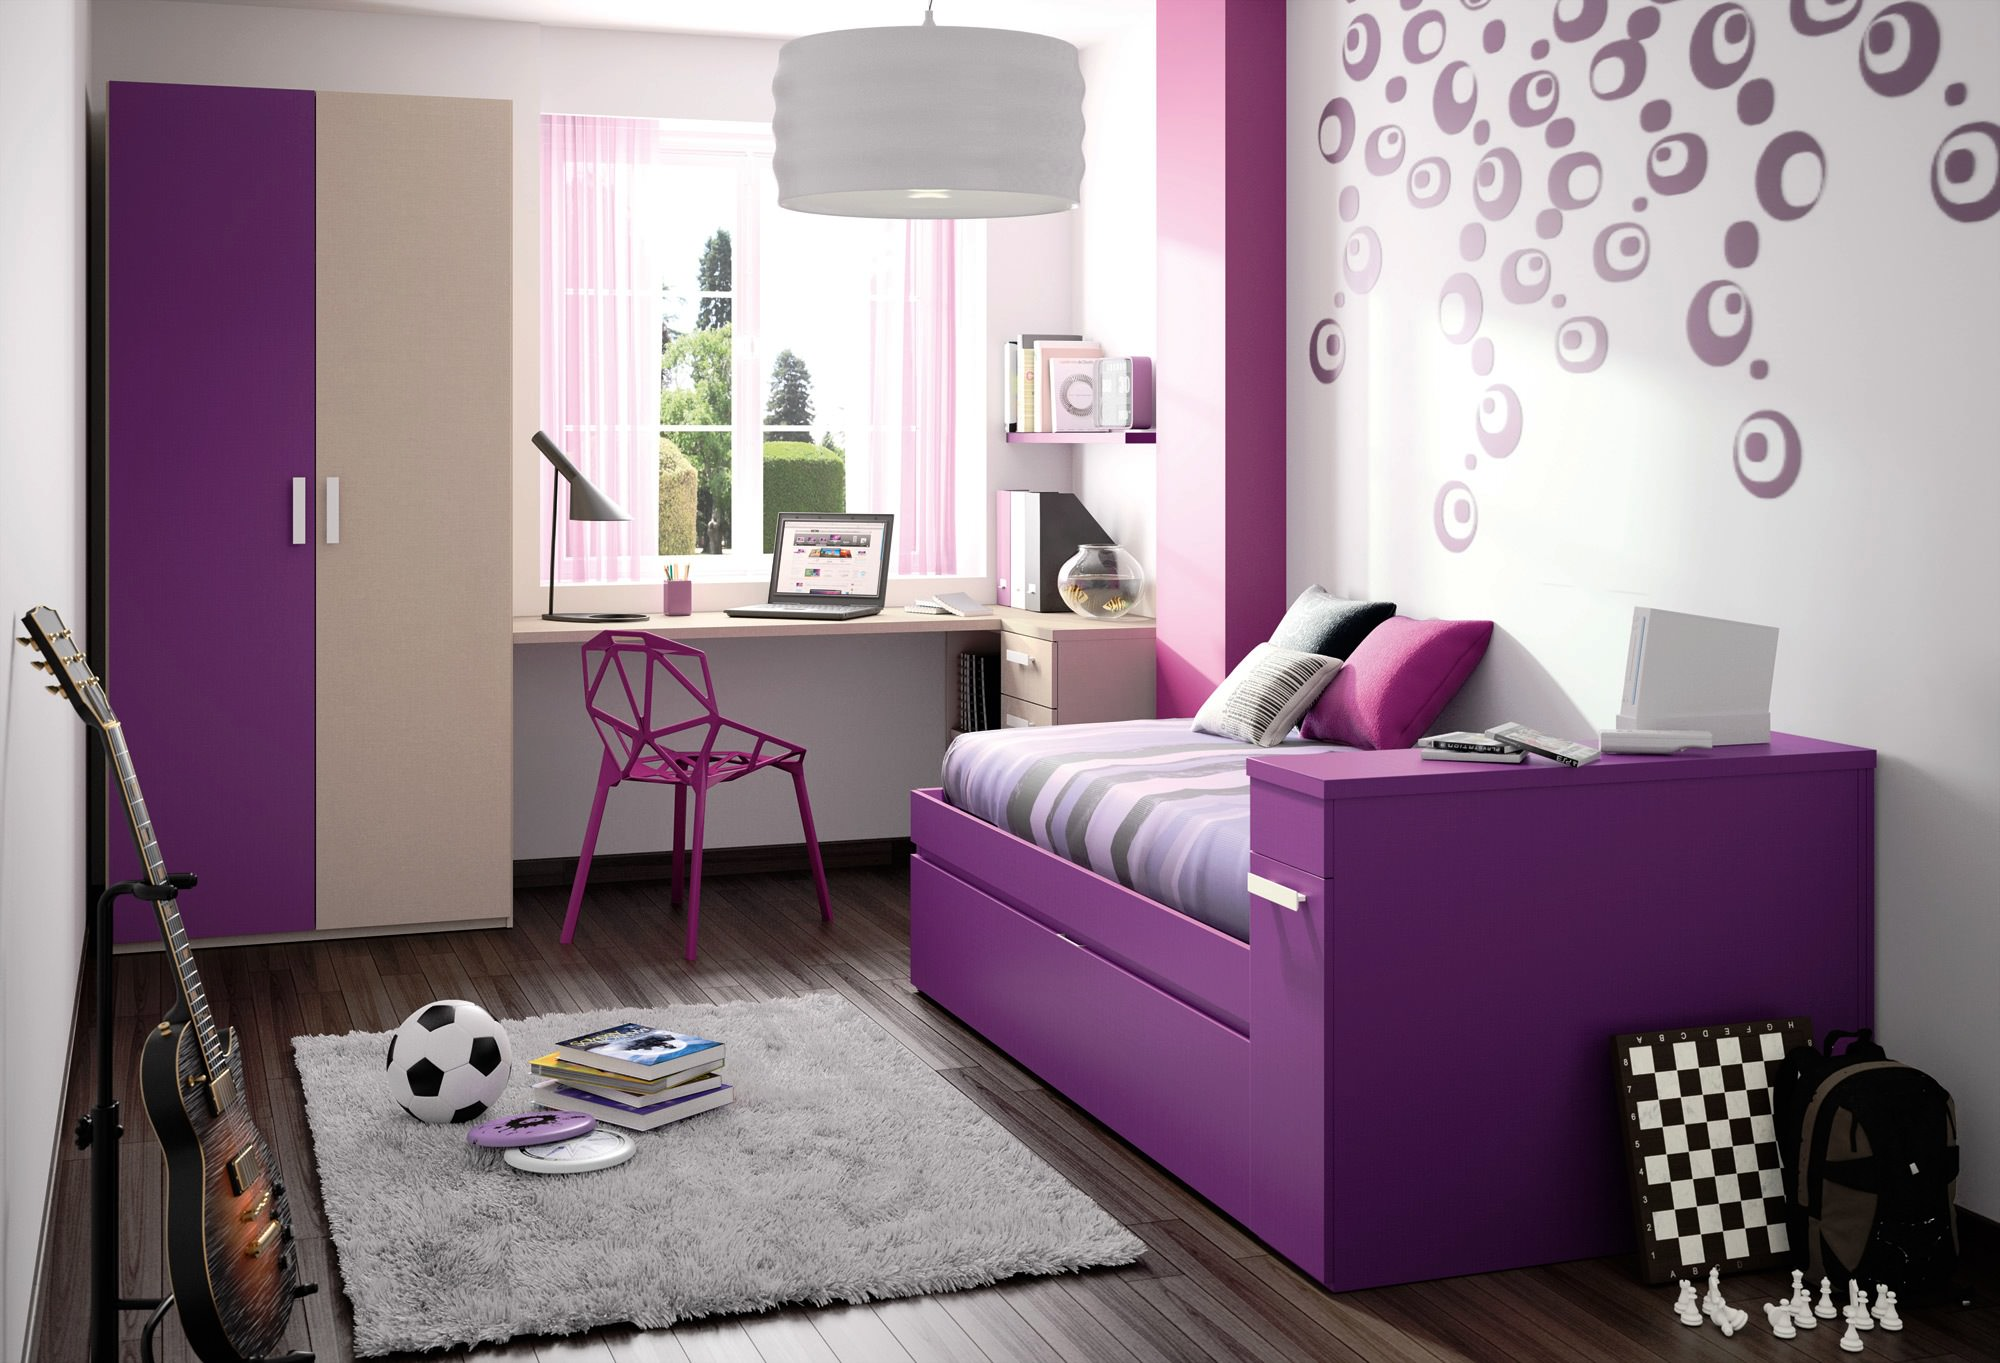 14+ Wall Designs, Decor Ideas For Teenage Bedrooms ... on Teens Room Decor  id=56716